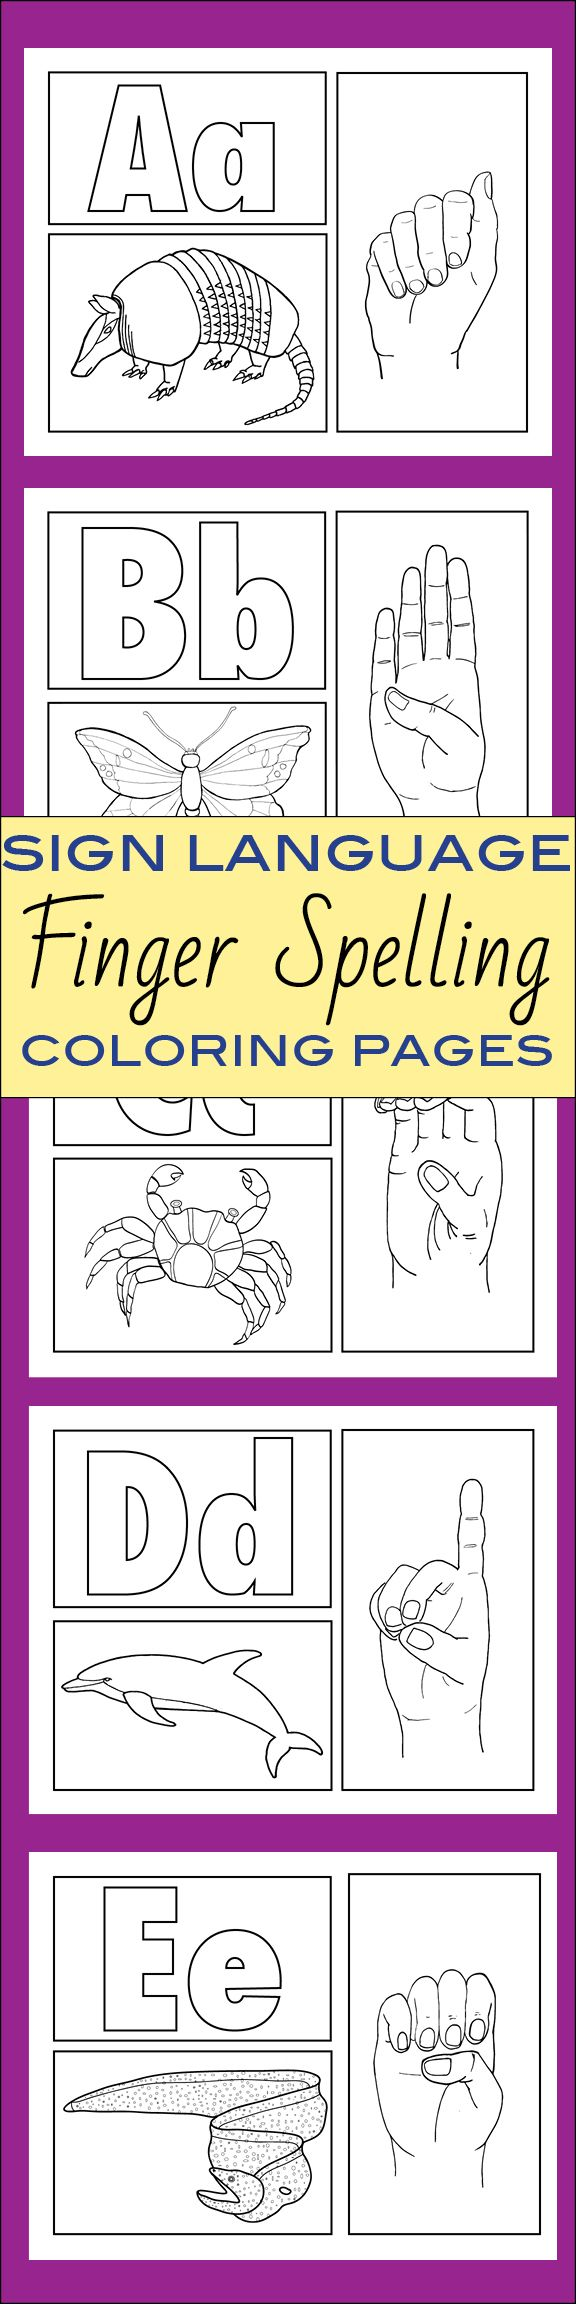 Sign Language Alphabet Classroom Decor, Coloring Sheets, and Room ...